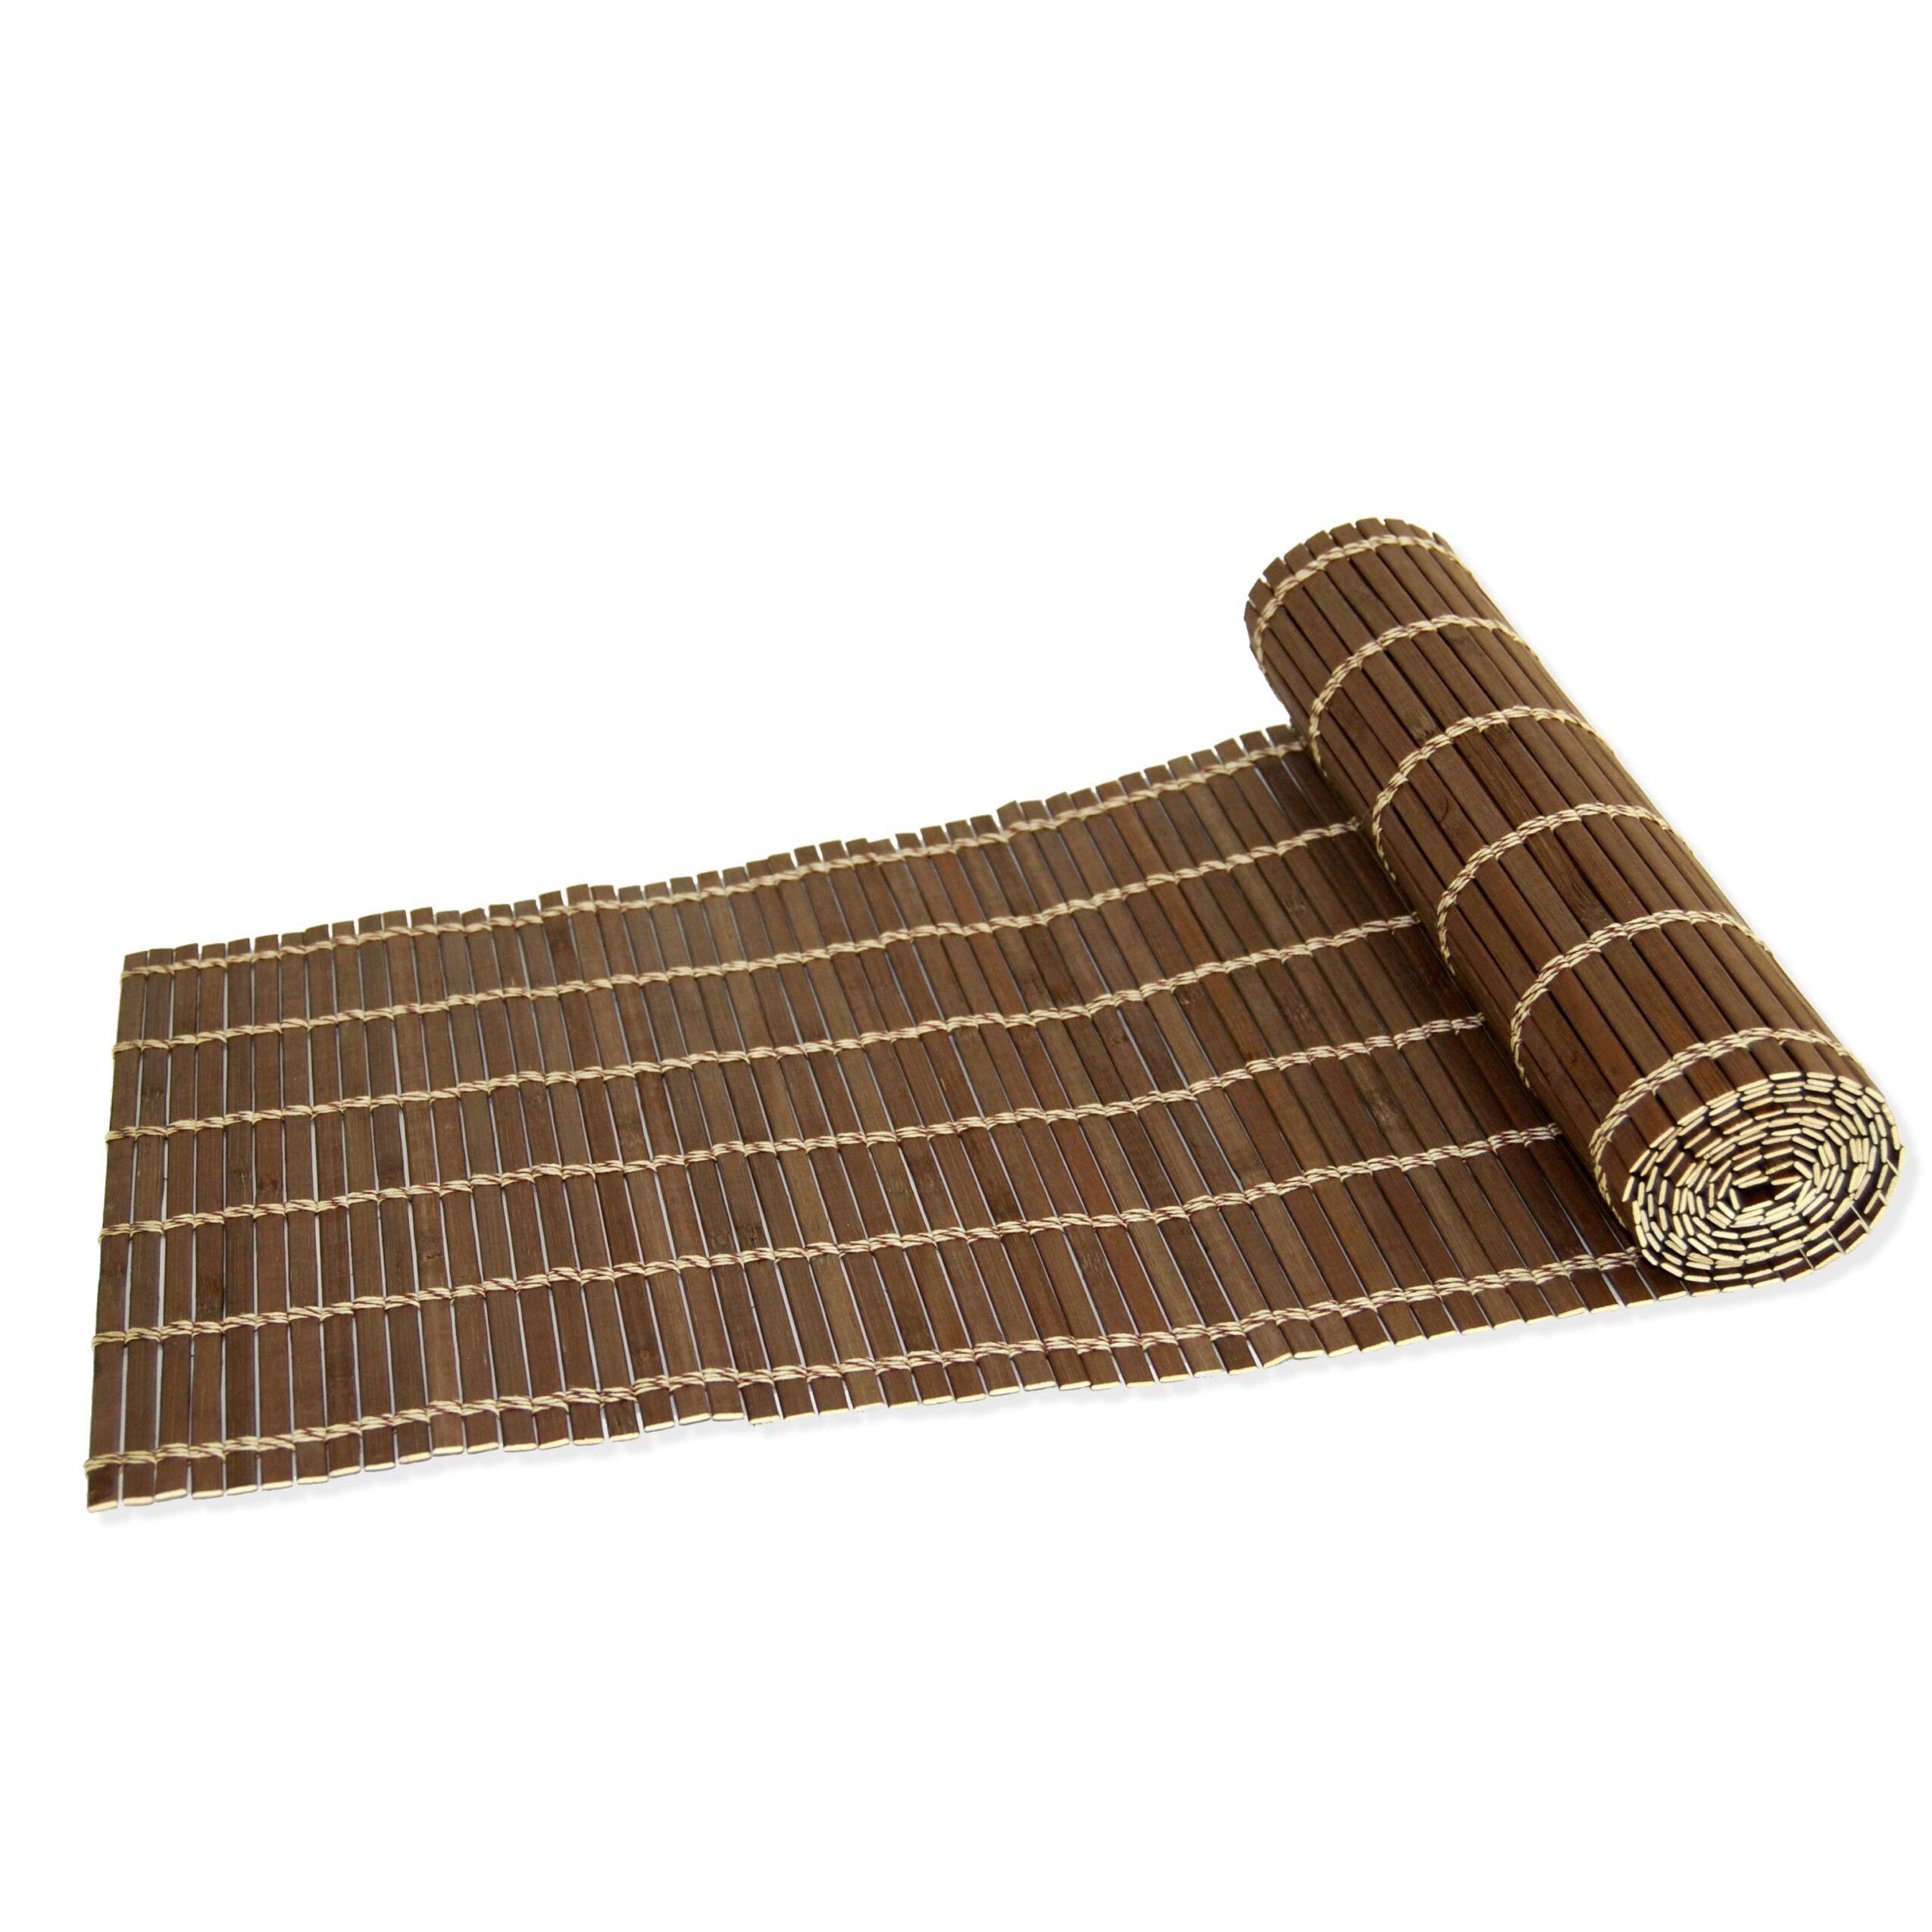 Bamboo table runner - Versailles Home Fashions Cameron Bamboo Table Runner